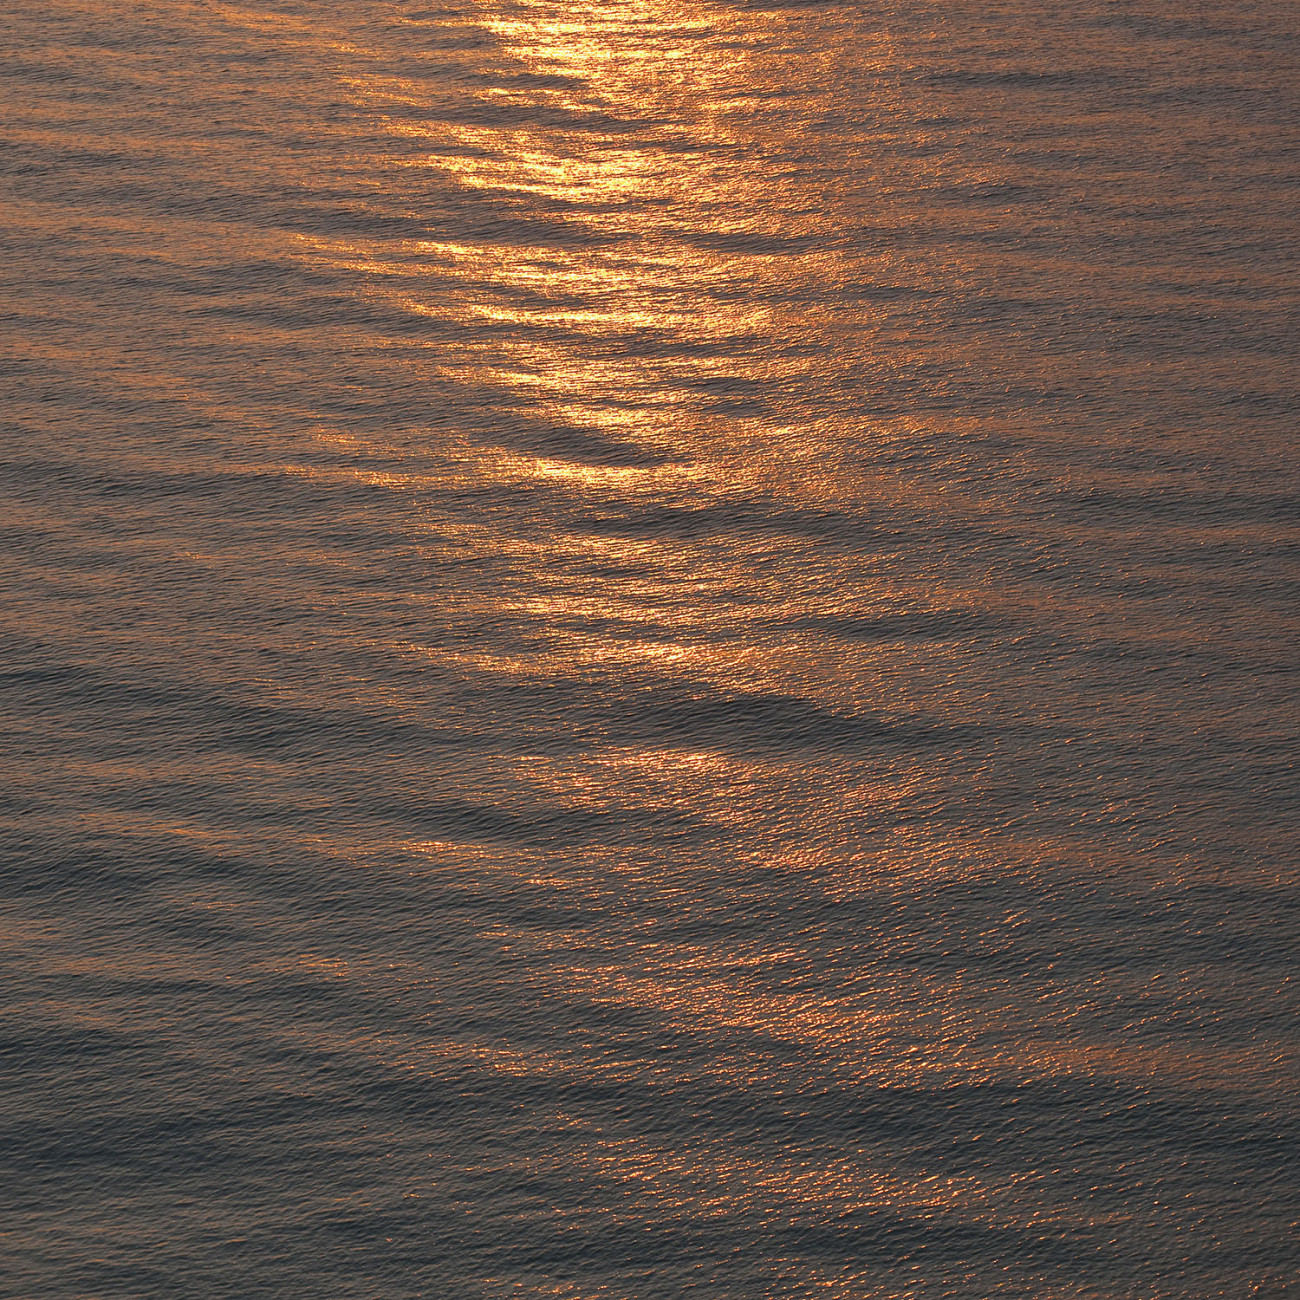 Sunrise reflection on calm seas, Florida, 2009